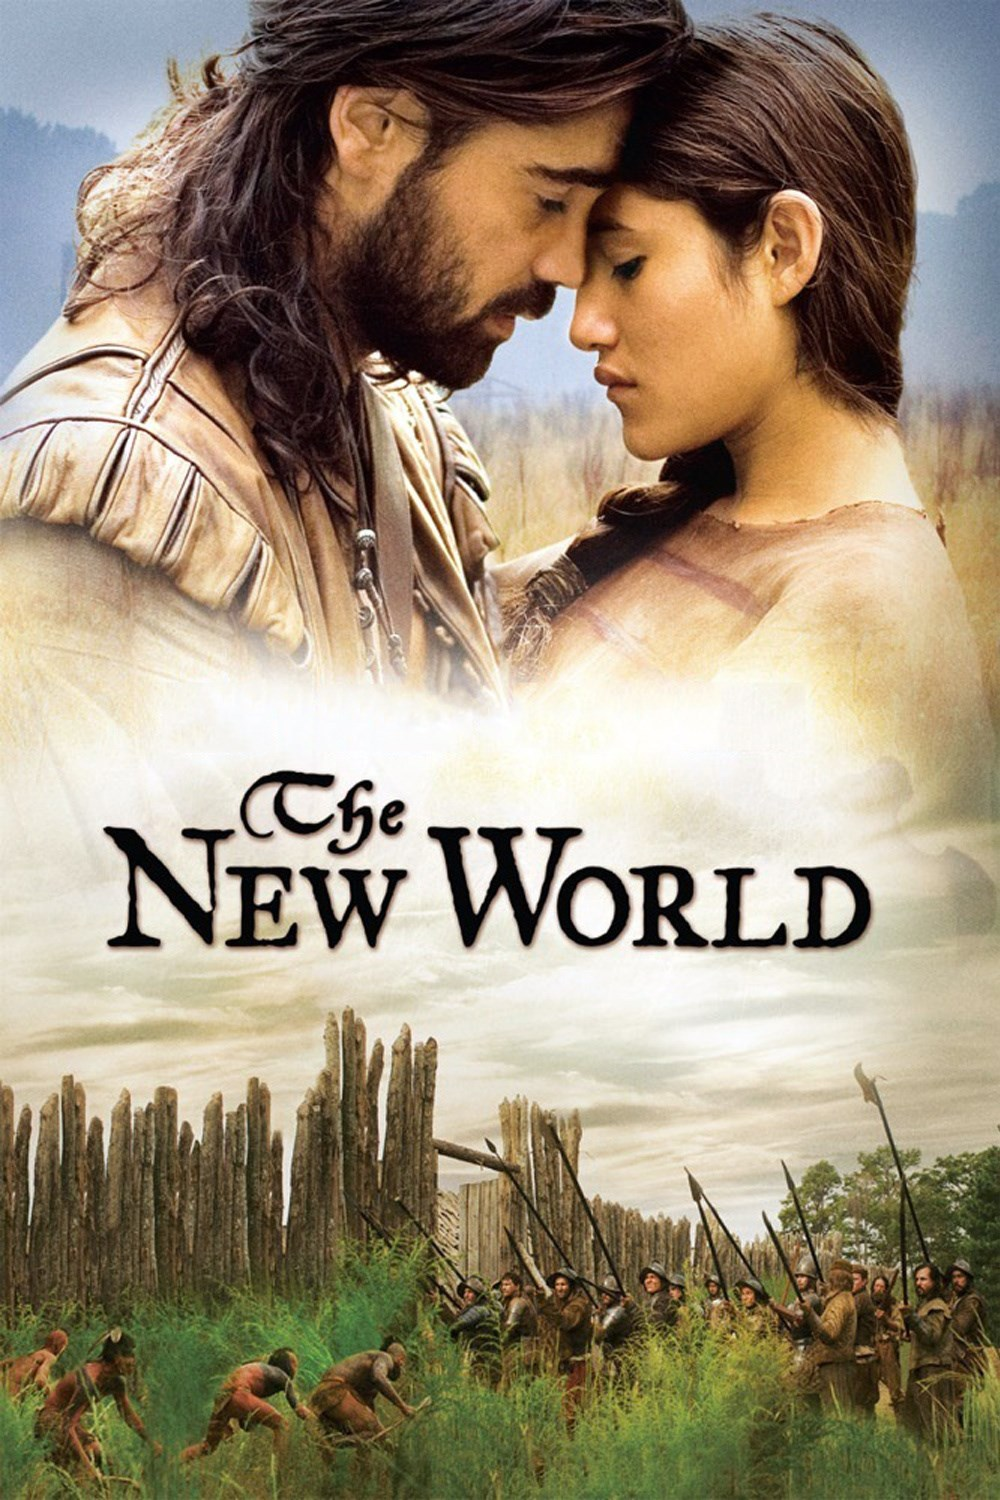 New world picture 61